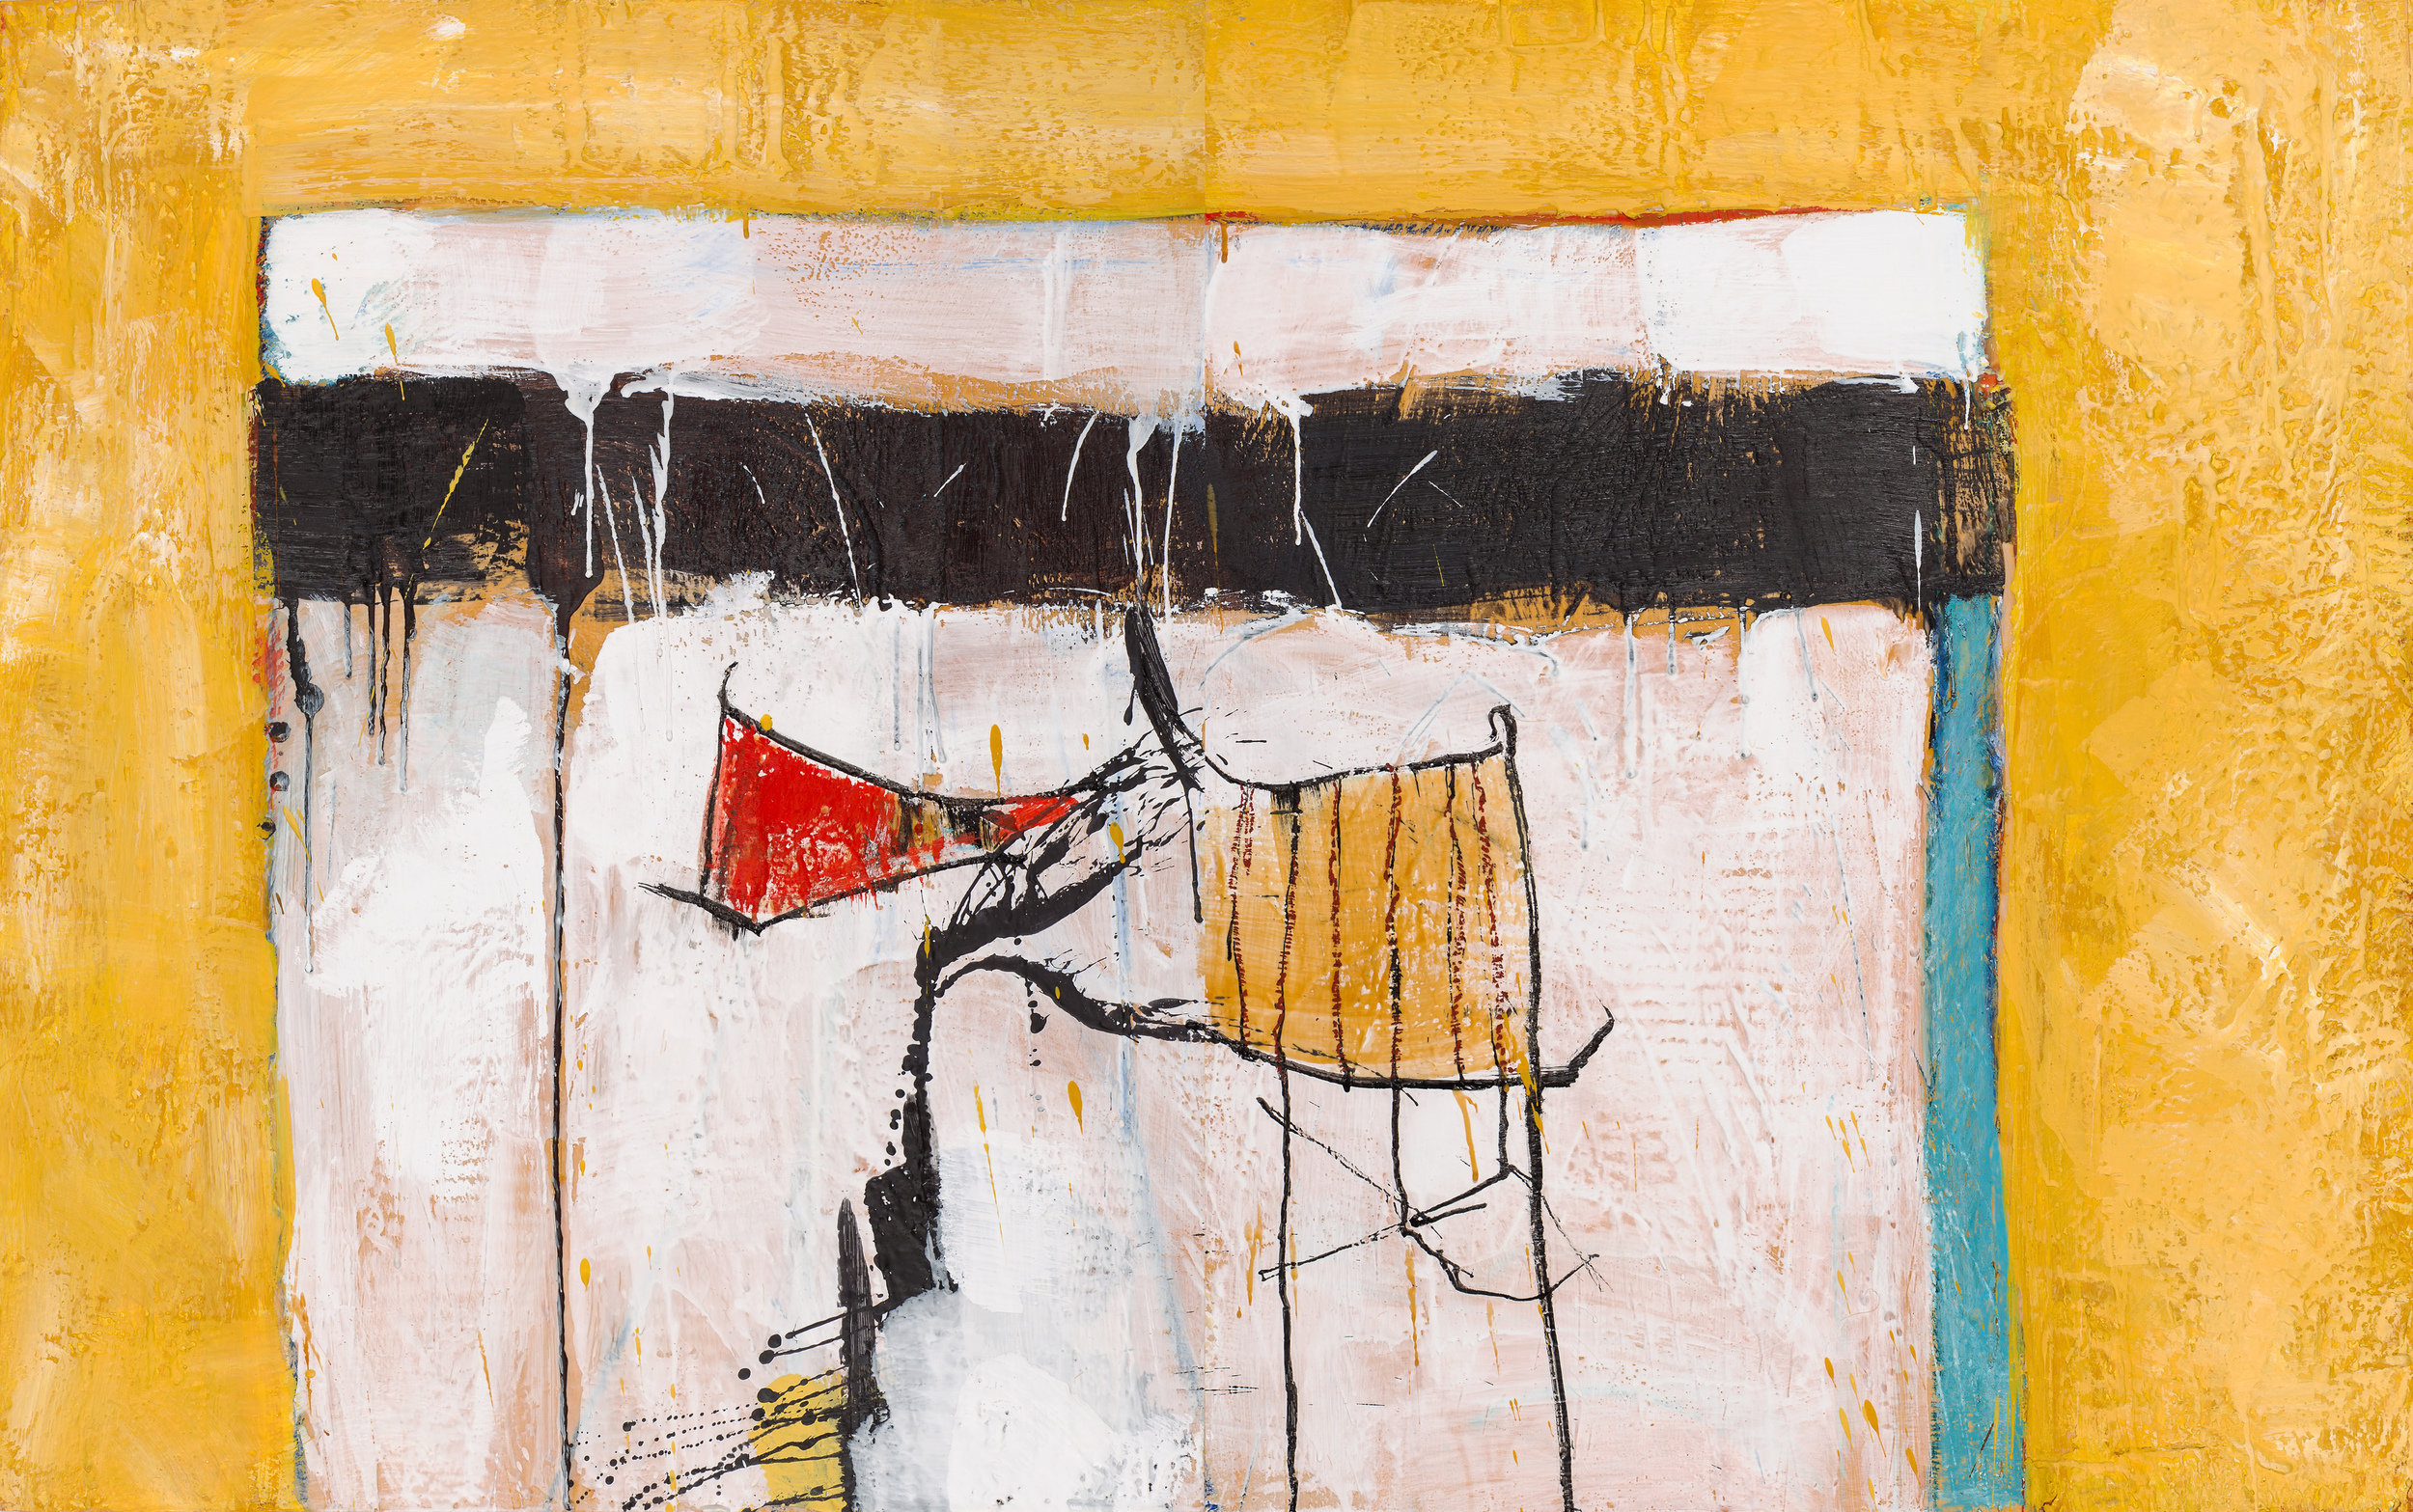 KW-067, Keith Wood, This Time 7, 2015, Encaustic on Panel, 48 x 30, $2,750